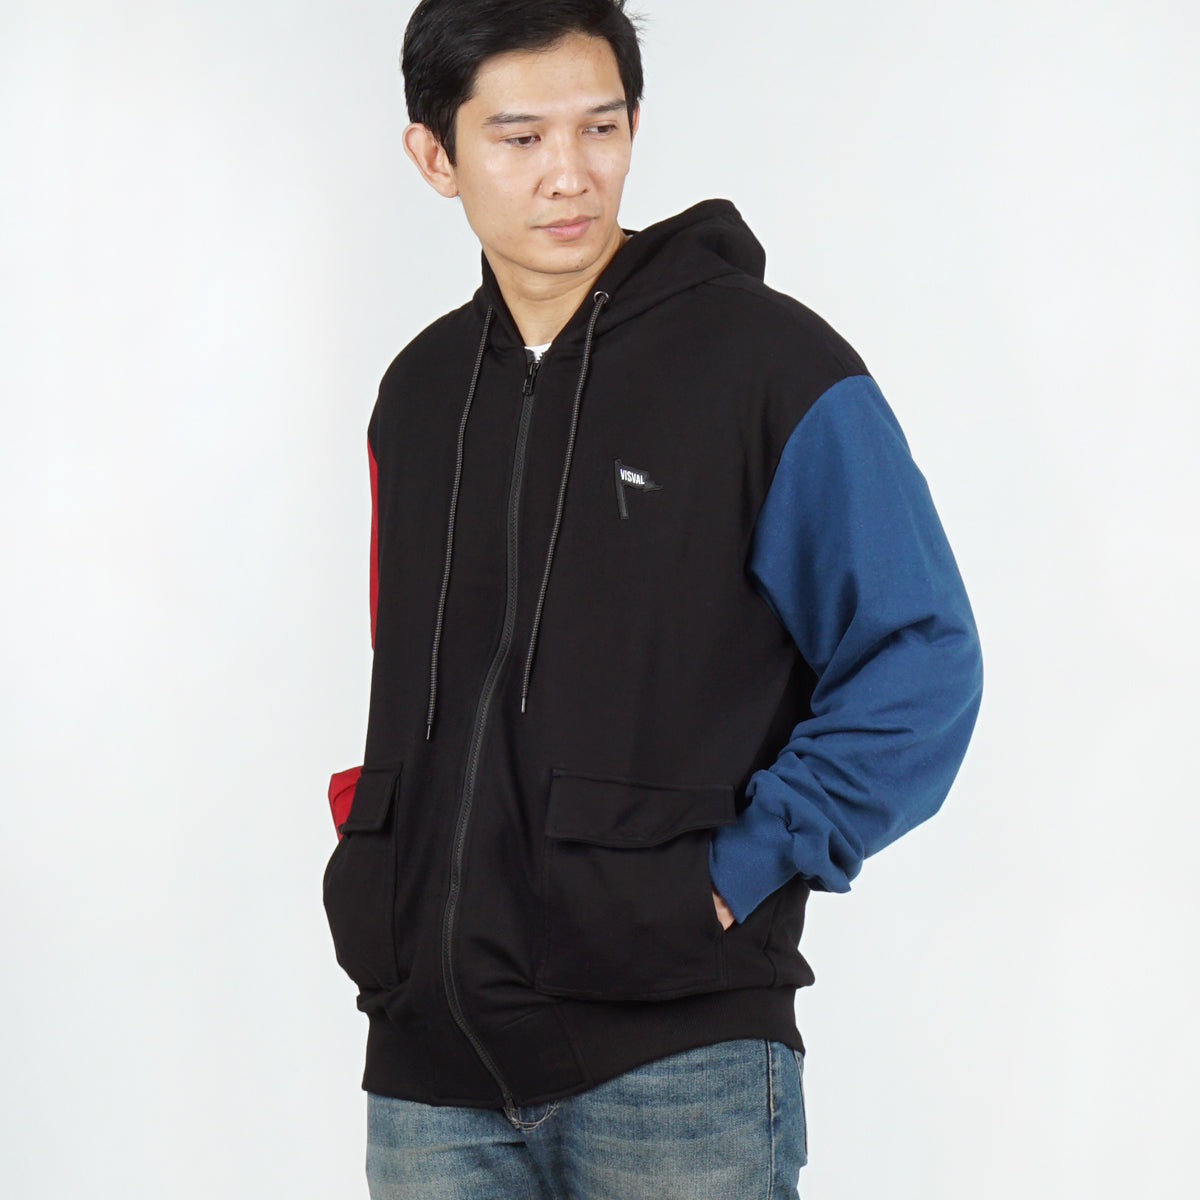 Kendo Sweater Black Navy Red